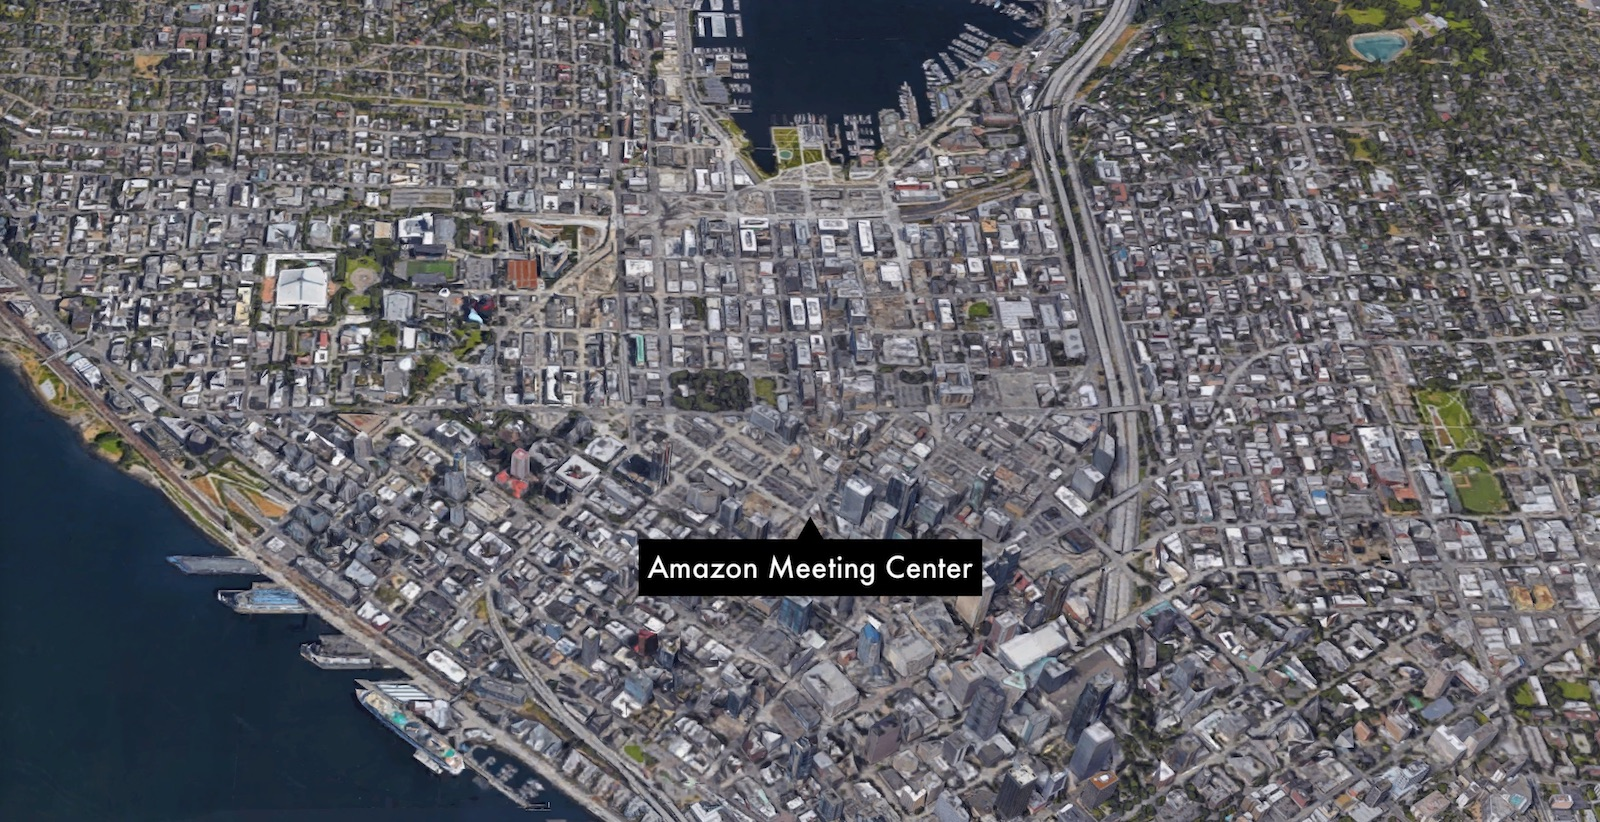 map of Seattle and location of Amazon Meeting Center